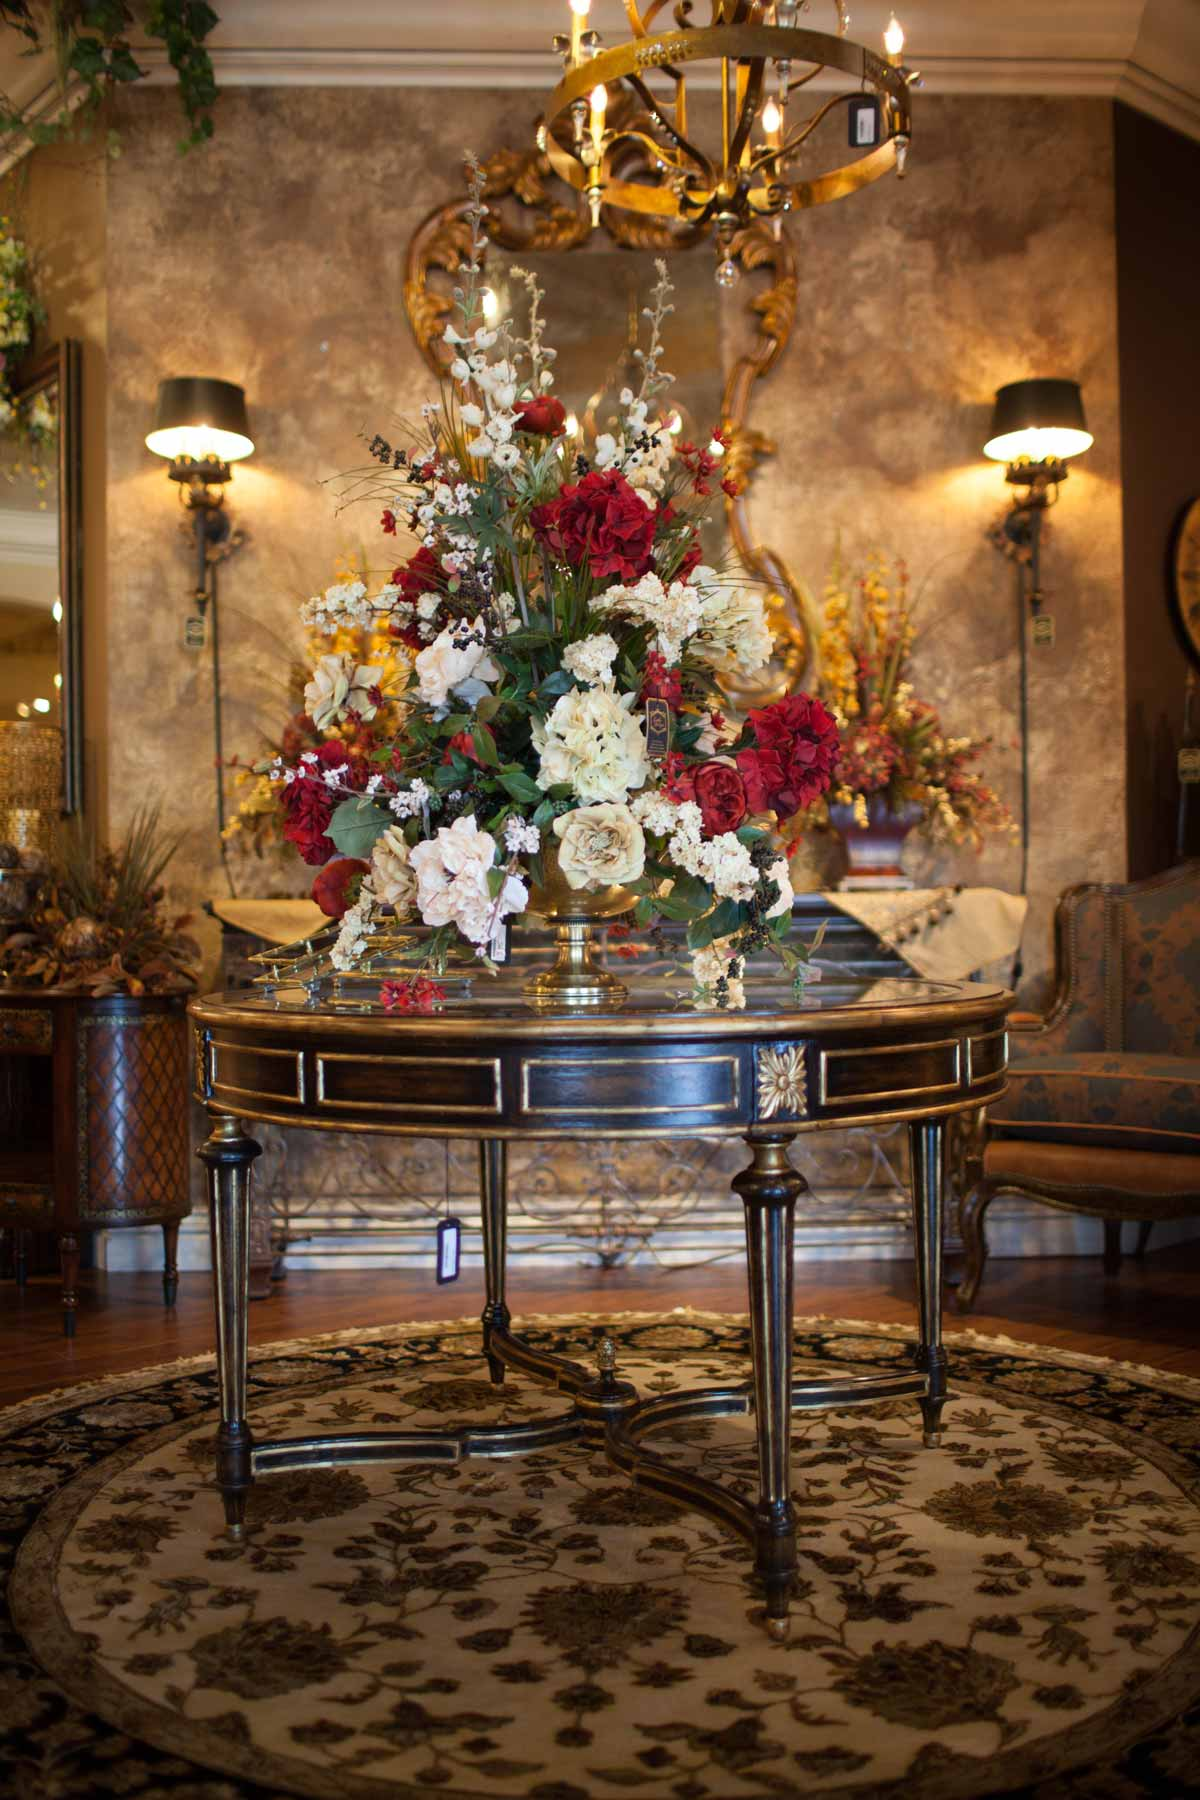 Foyer Table Floral Arrangements : Silk floral seasonal decor linly designs